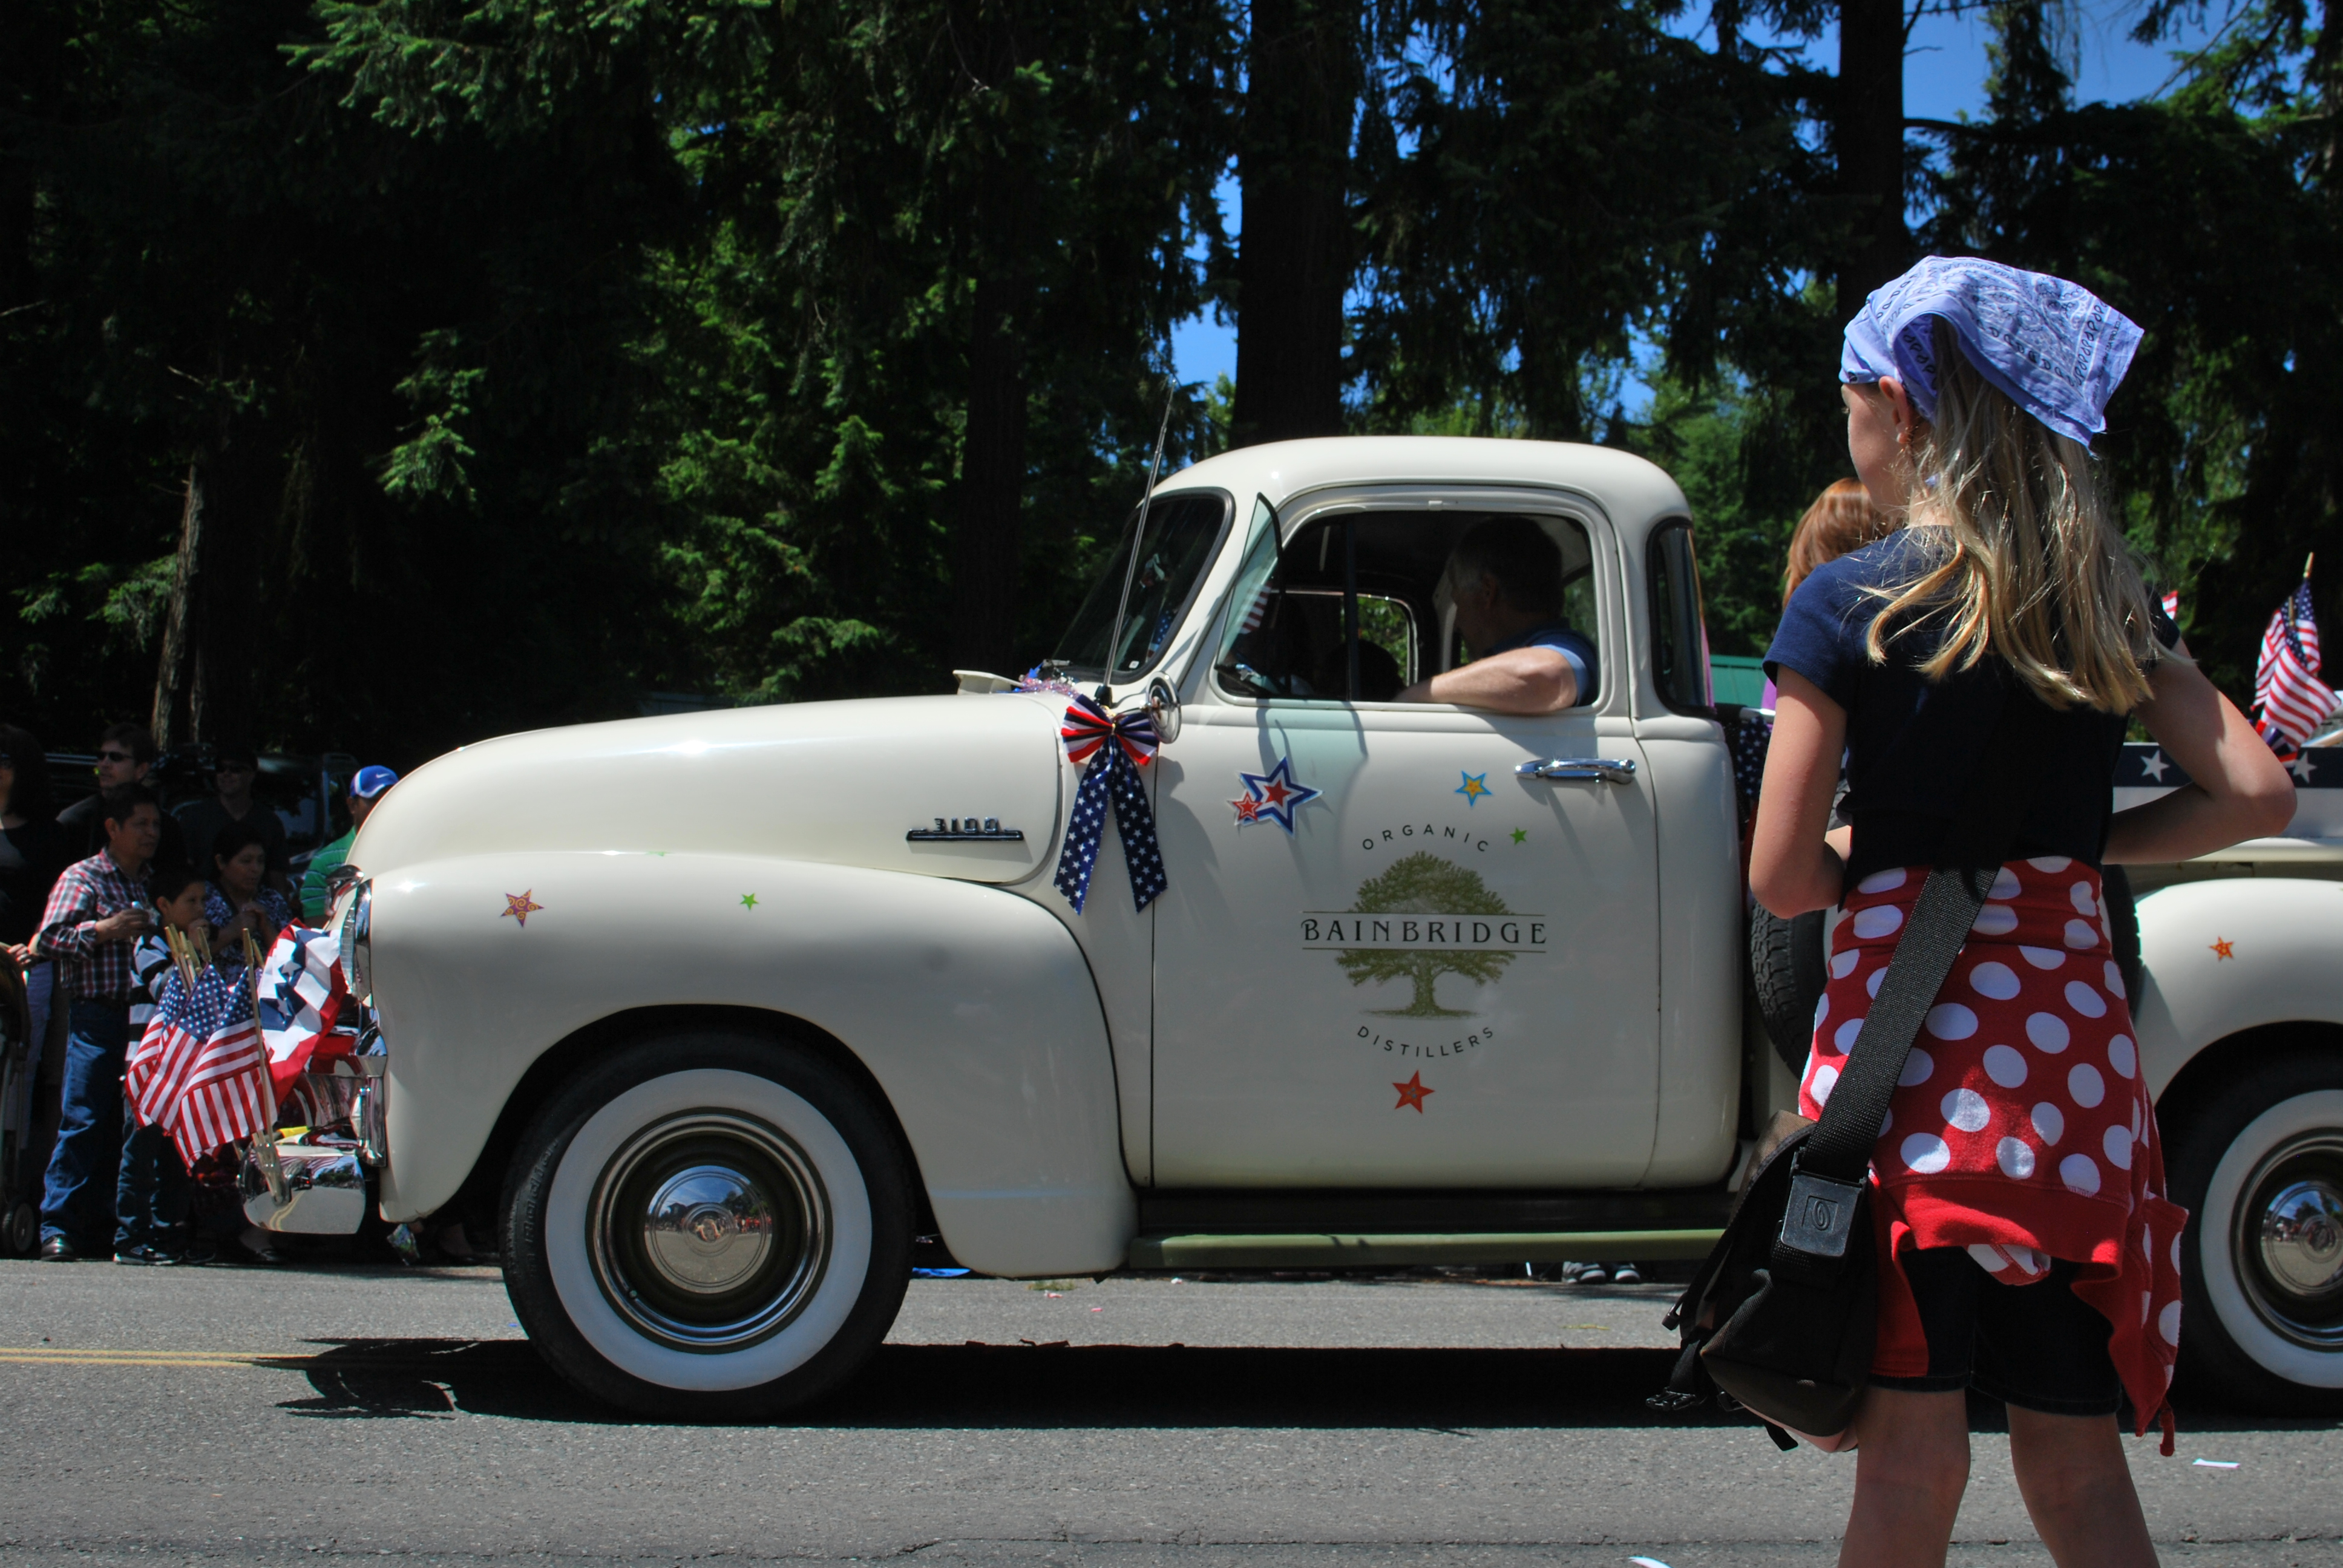 4th of July on Bainbridge Island